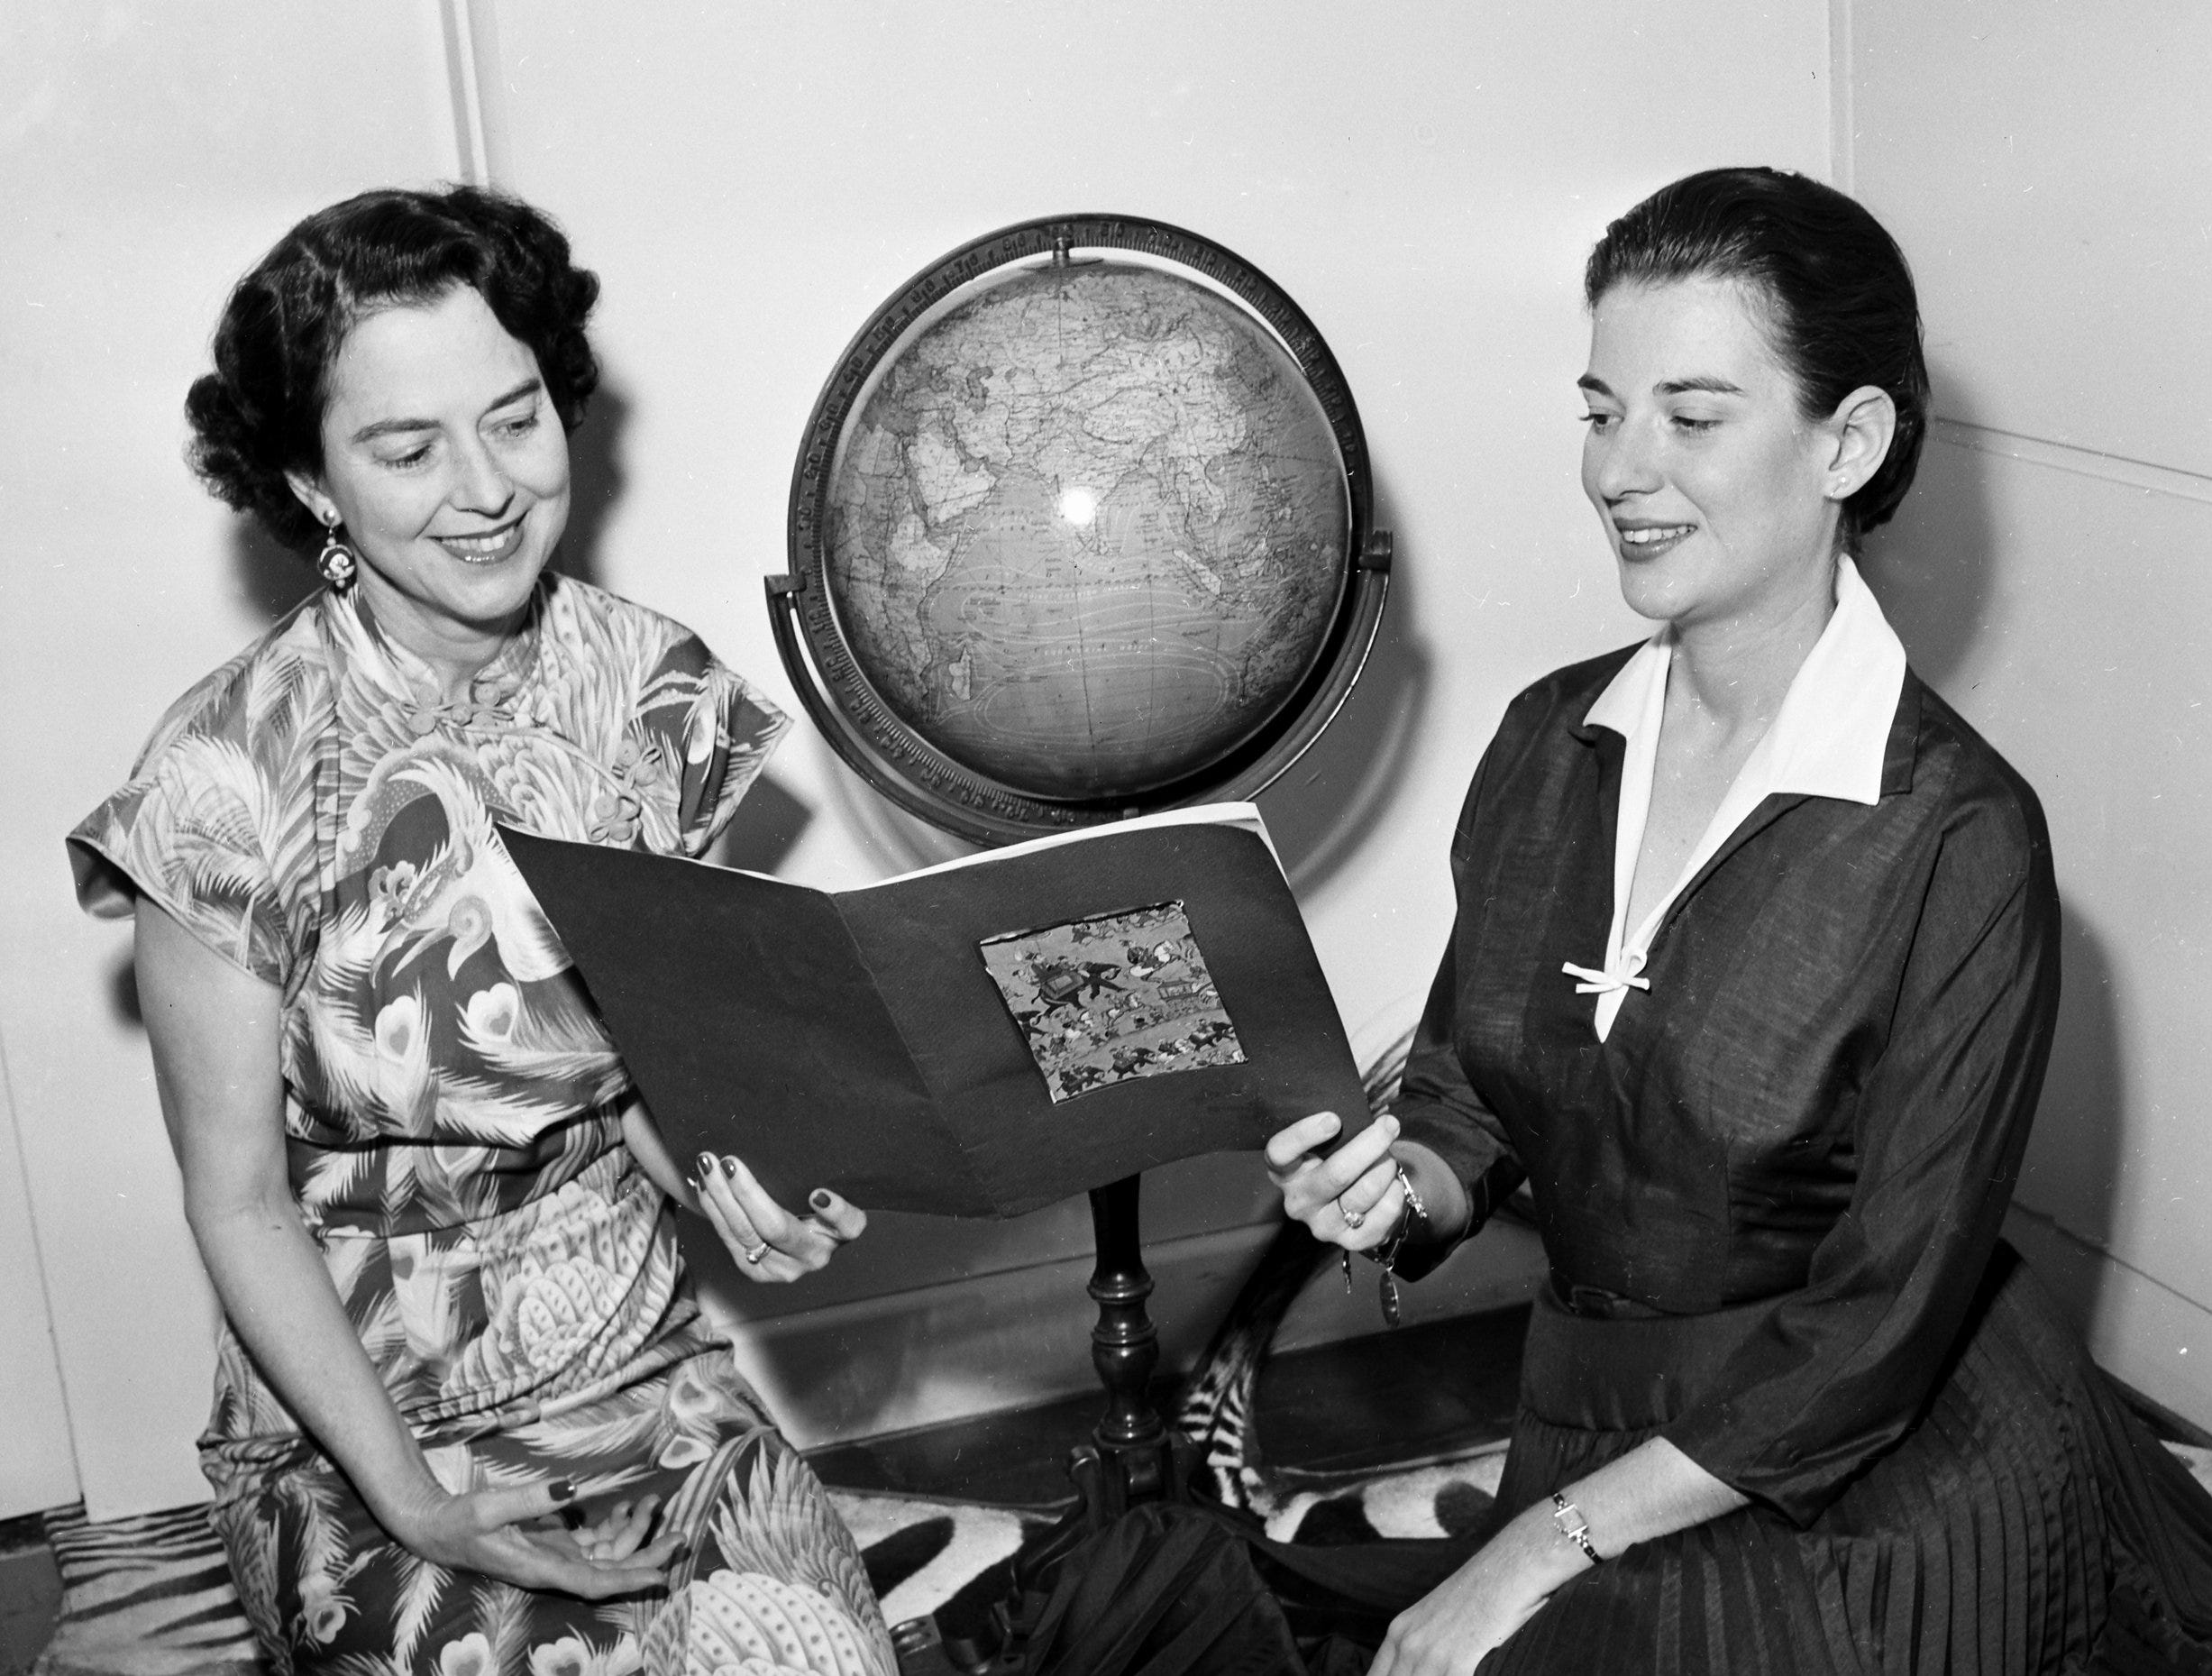 A four-month flight around the world is ahead for Mrs. Berry B. Brooks (Left) and her daughter, Miss Virginia Brooks, of Memphis.  Here they are brushing up on their knowledge of the orient, even sitting Japanese fashion while looking through travel articles on 17 Jan 1956.